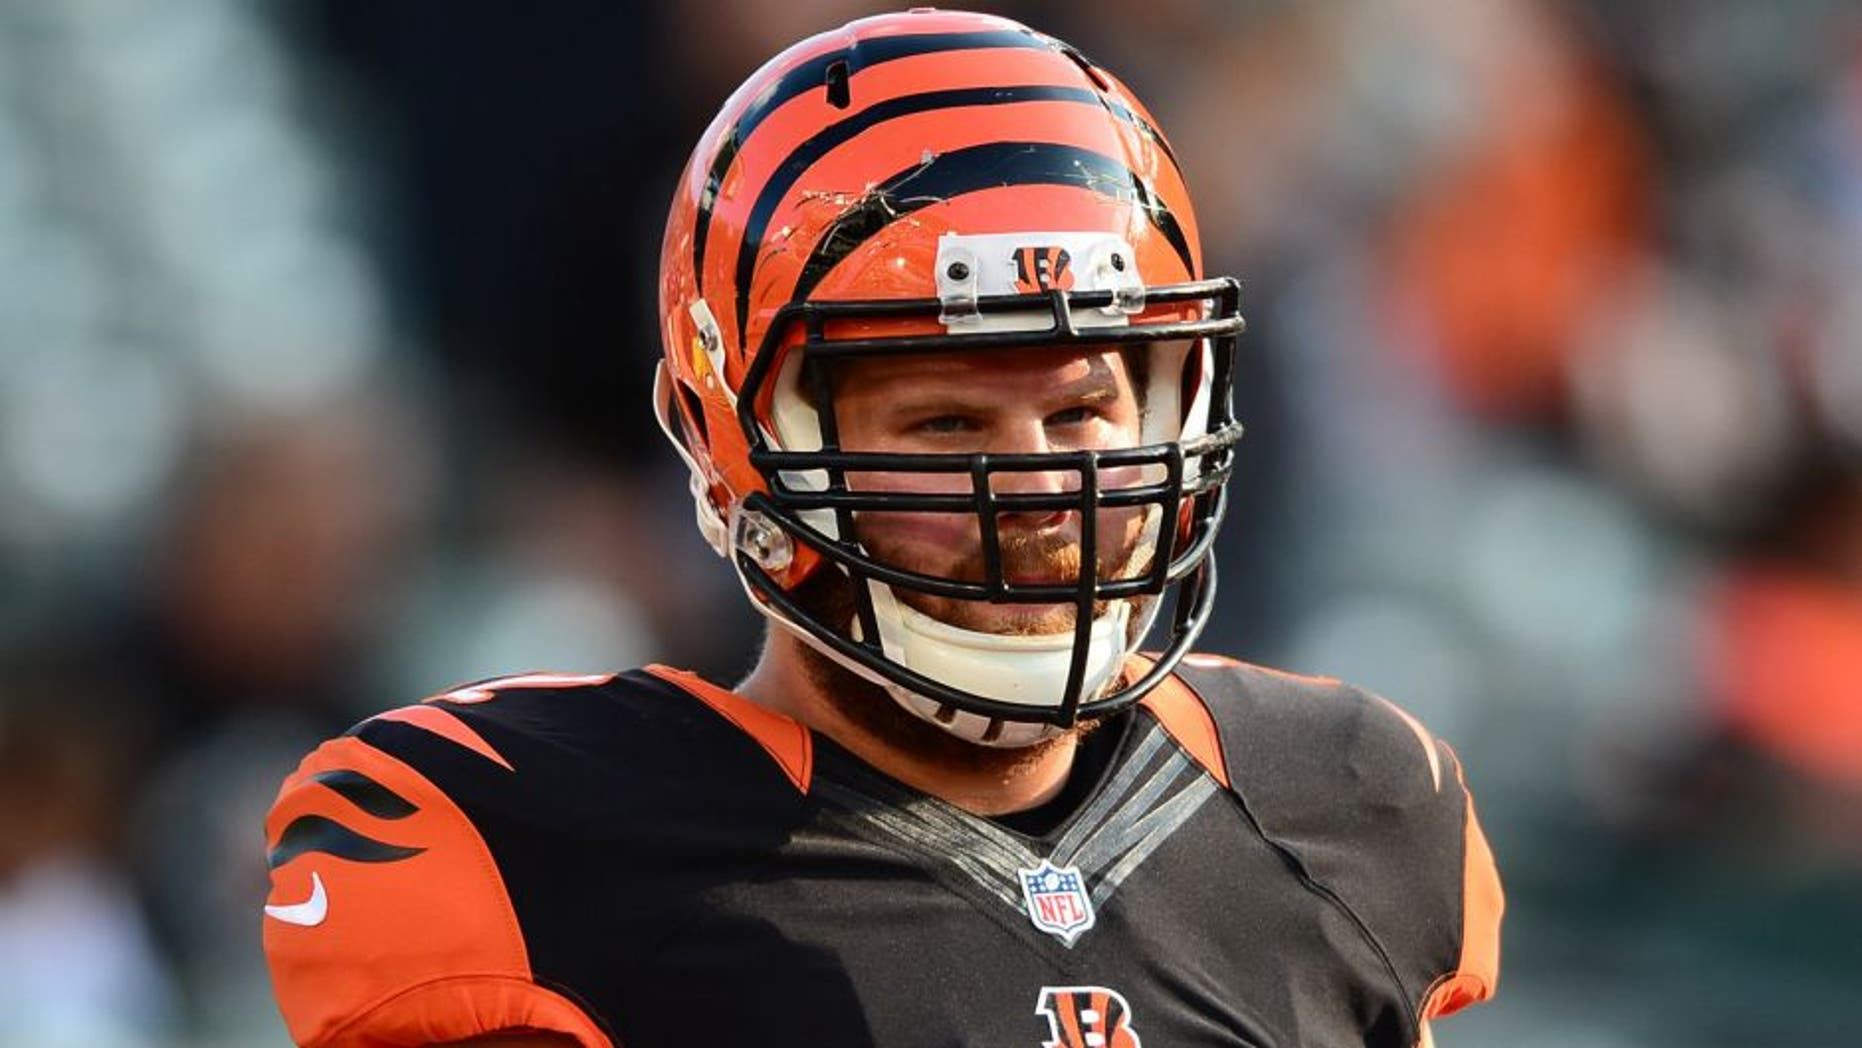 Aug 28, 2014; Cincinnati, OH, USA; Cincinnati Bengals guard Tanner Hawkinson (72) against the Indianapolis Colts at Paul Brown Stadium. Mandatory Credit: Andrew Weber-USA TODAY Sports